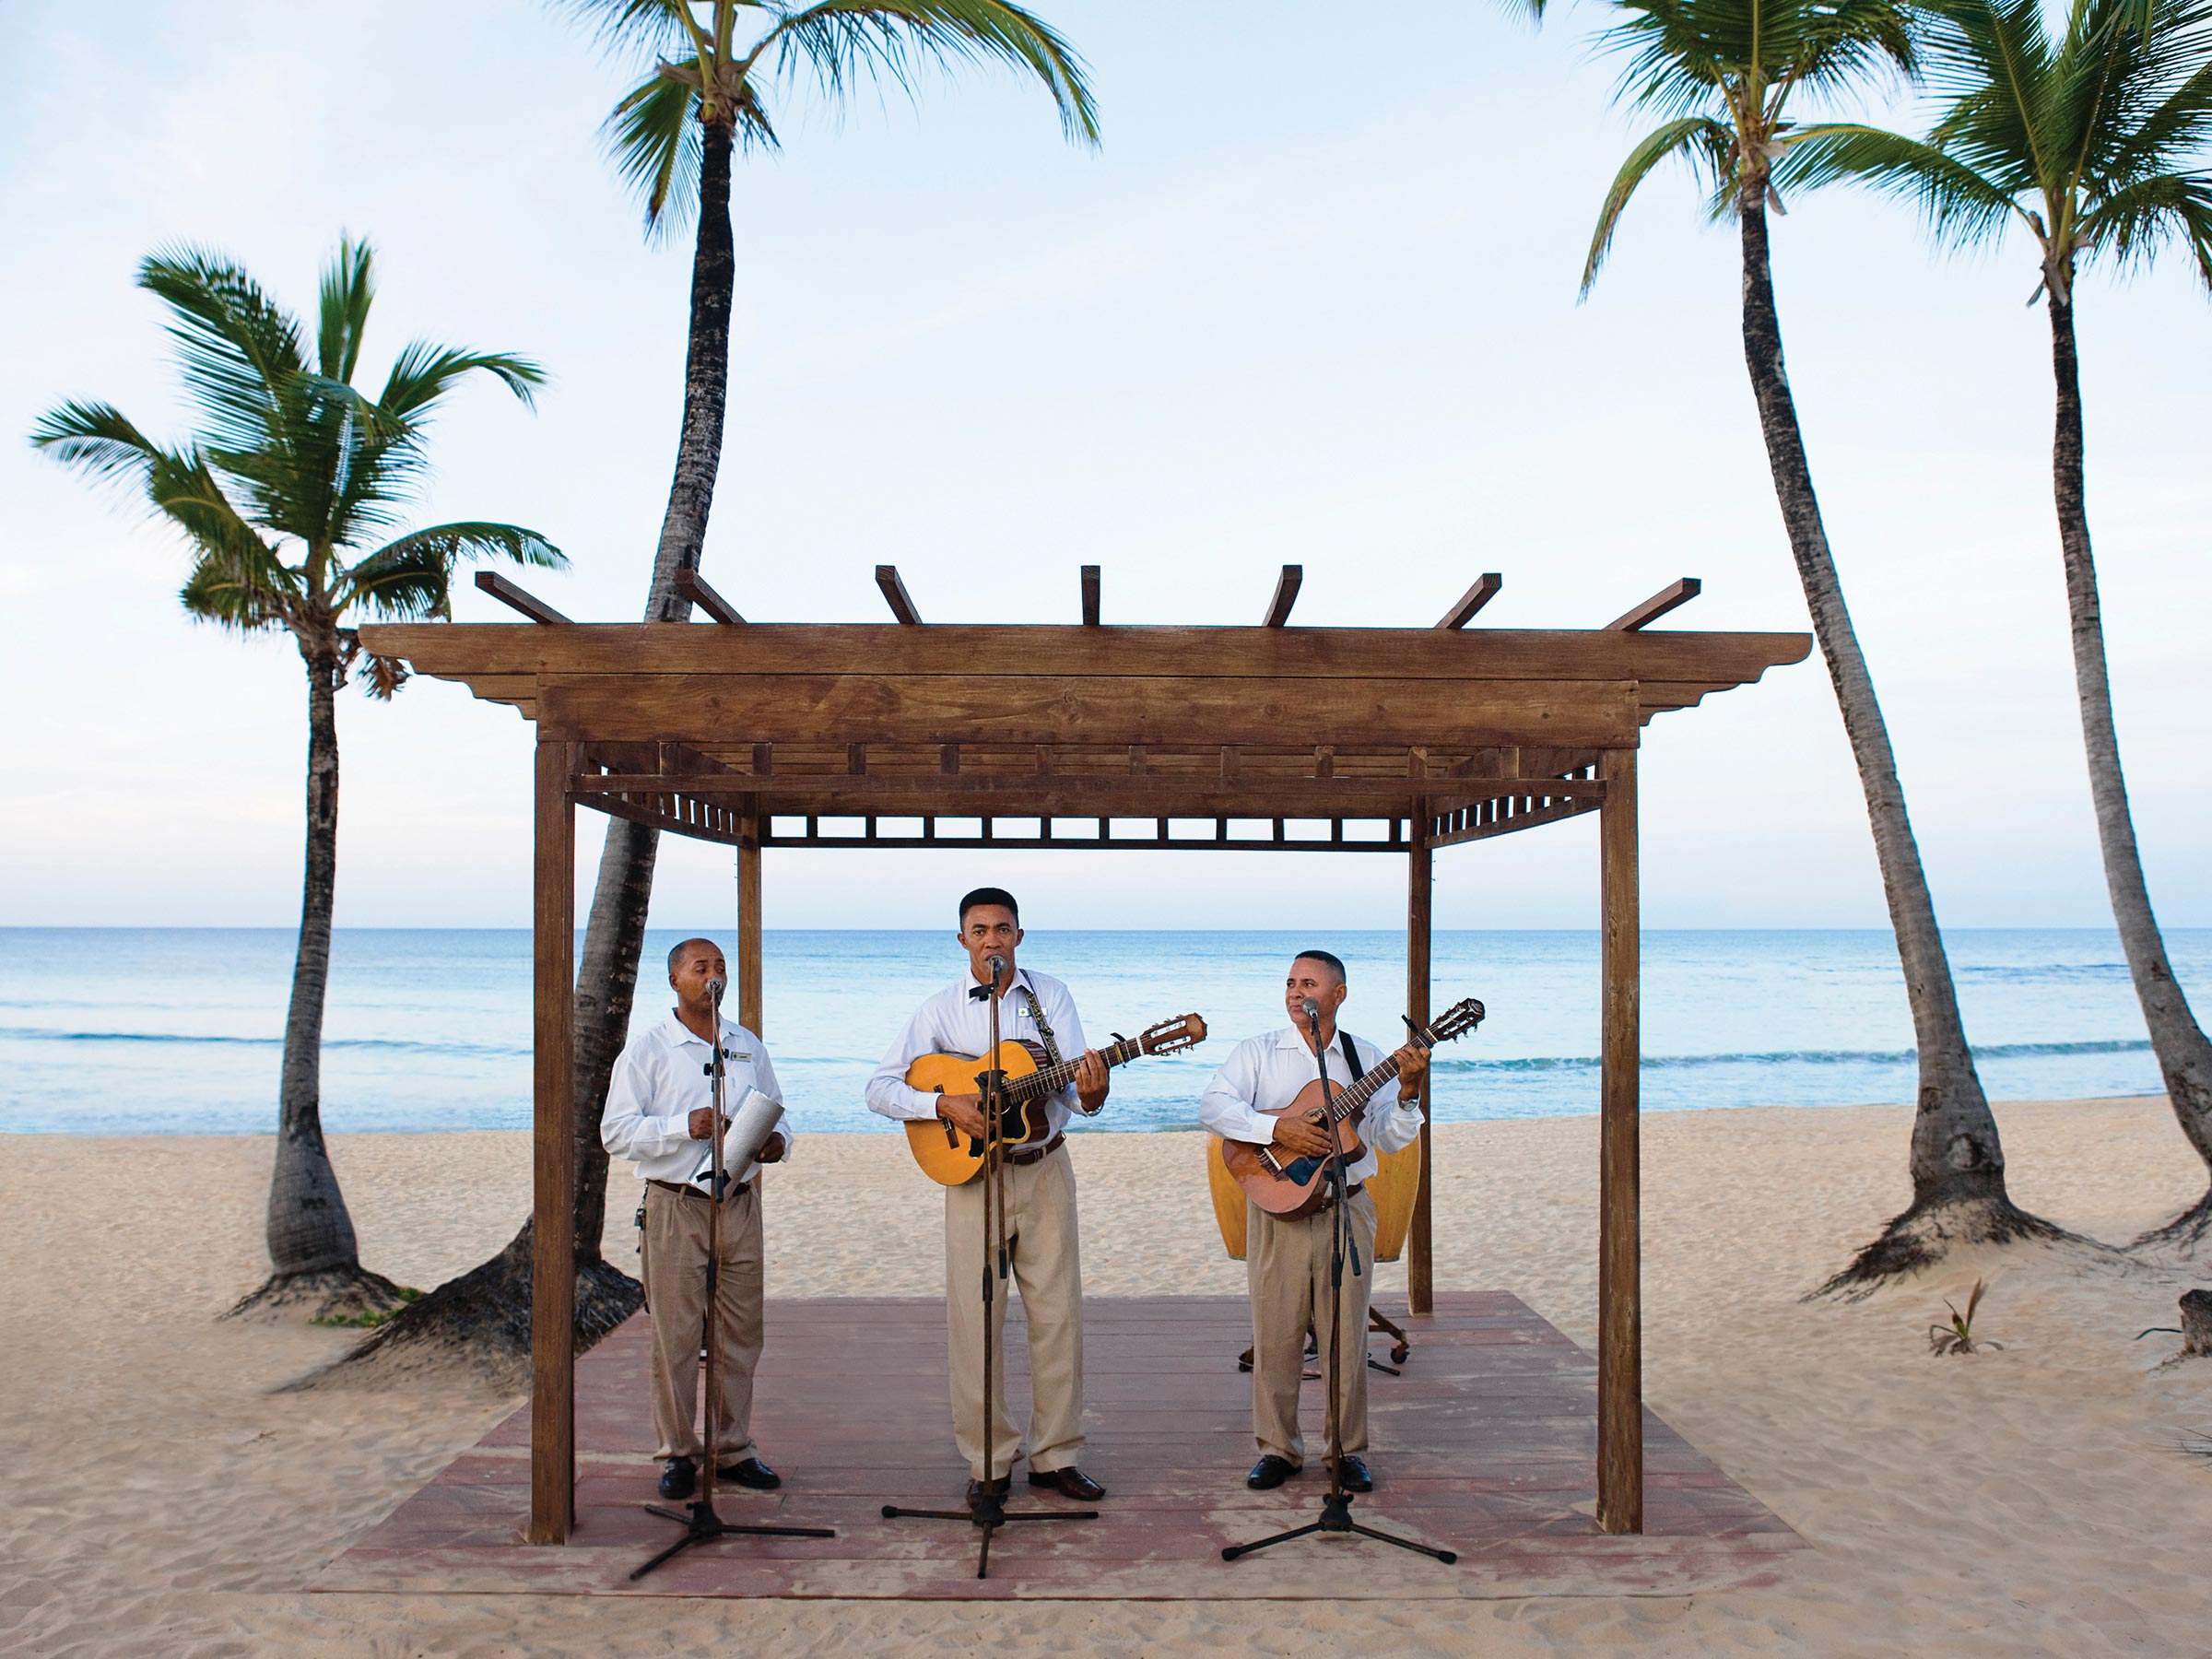 Punta Cana Live Music on the Beach